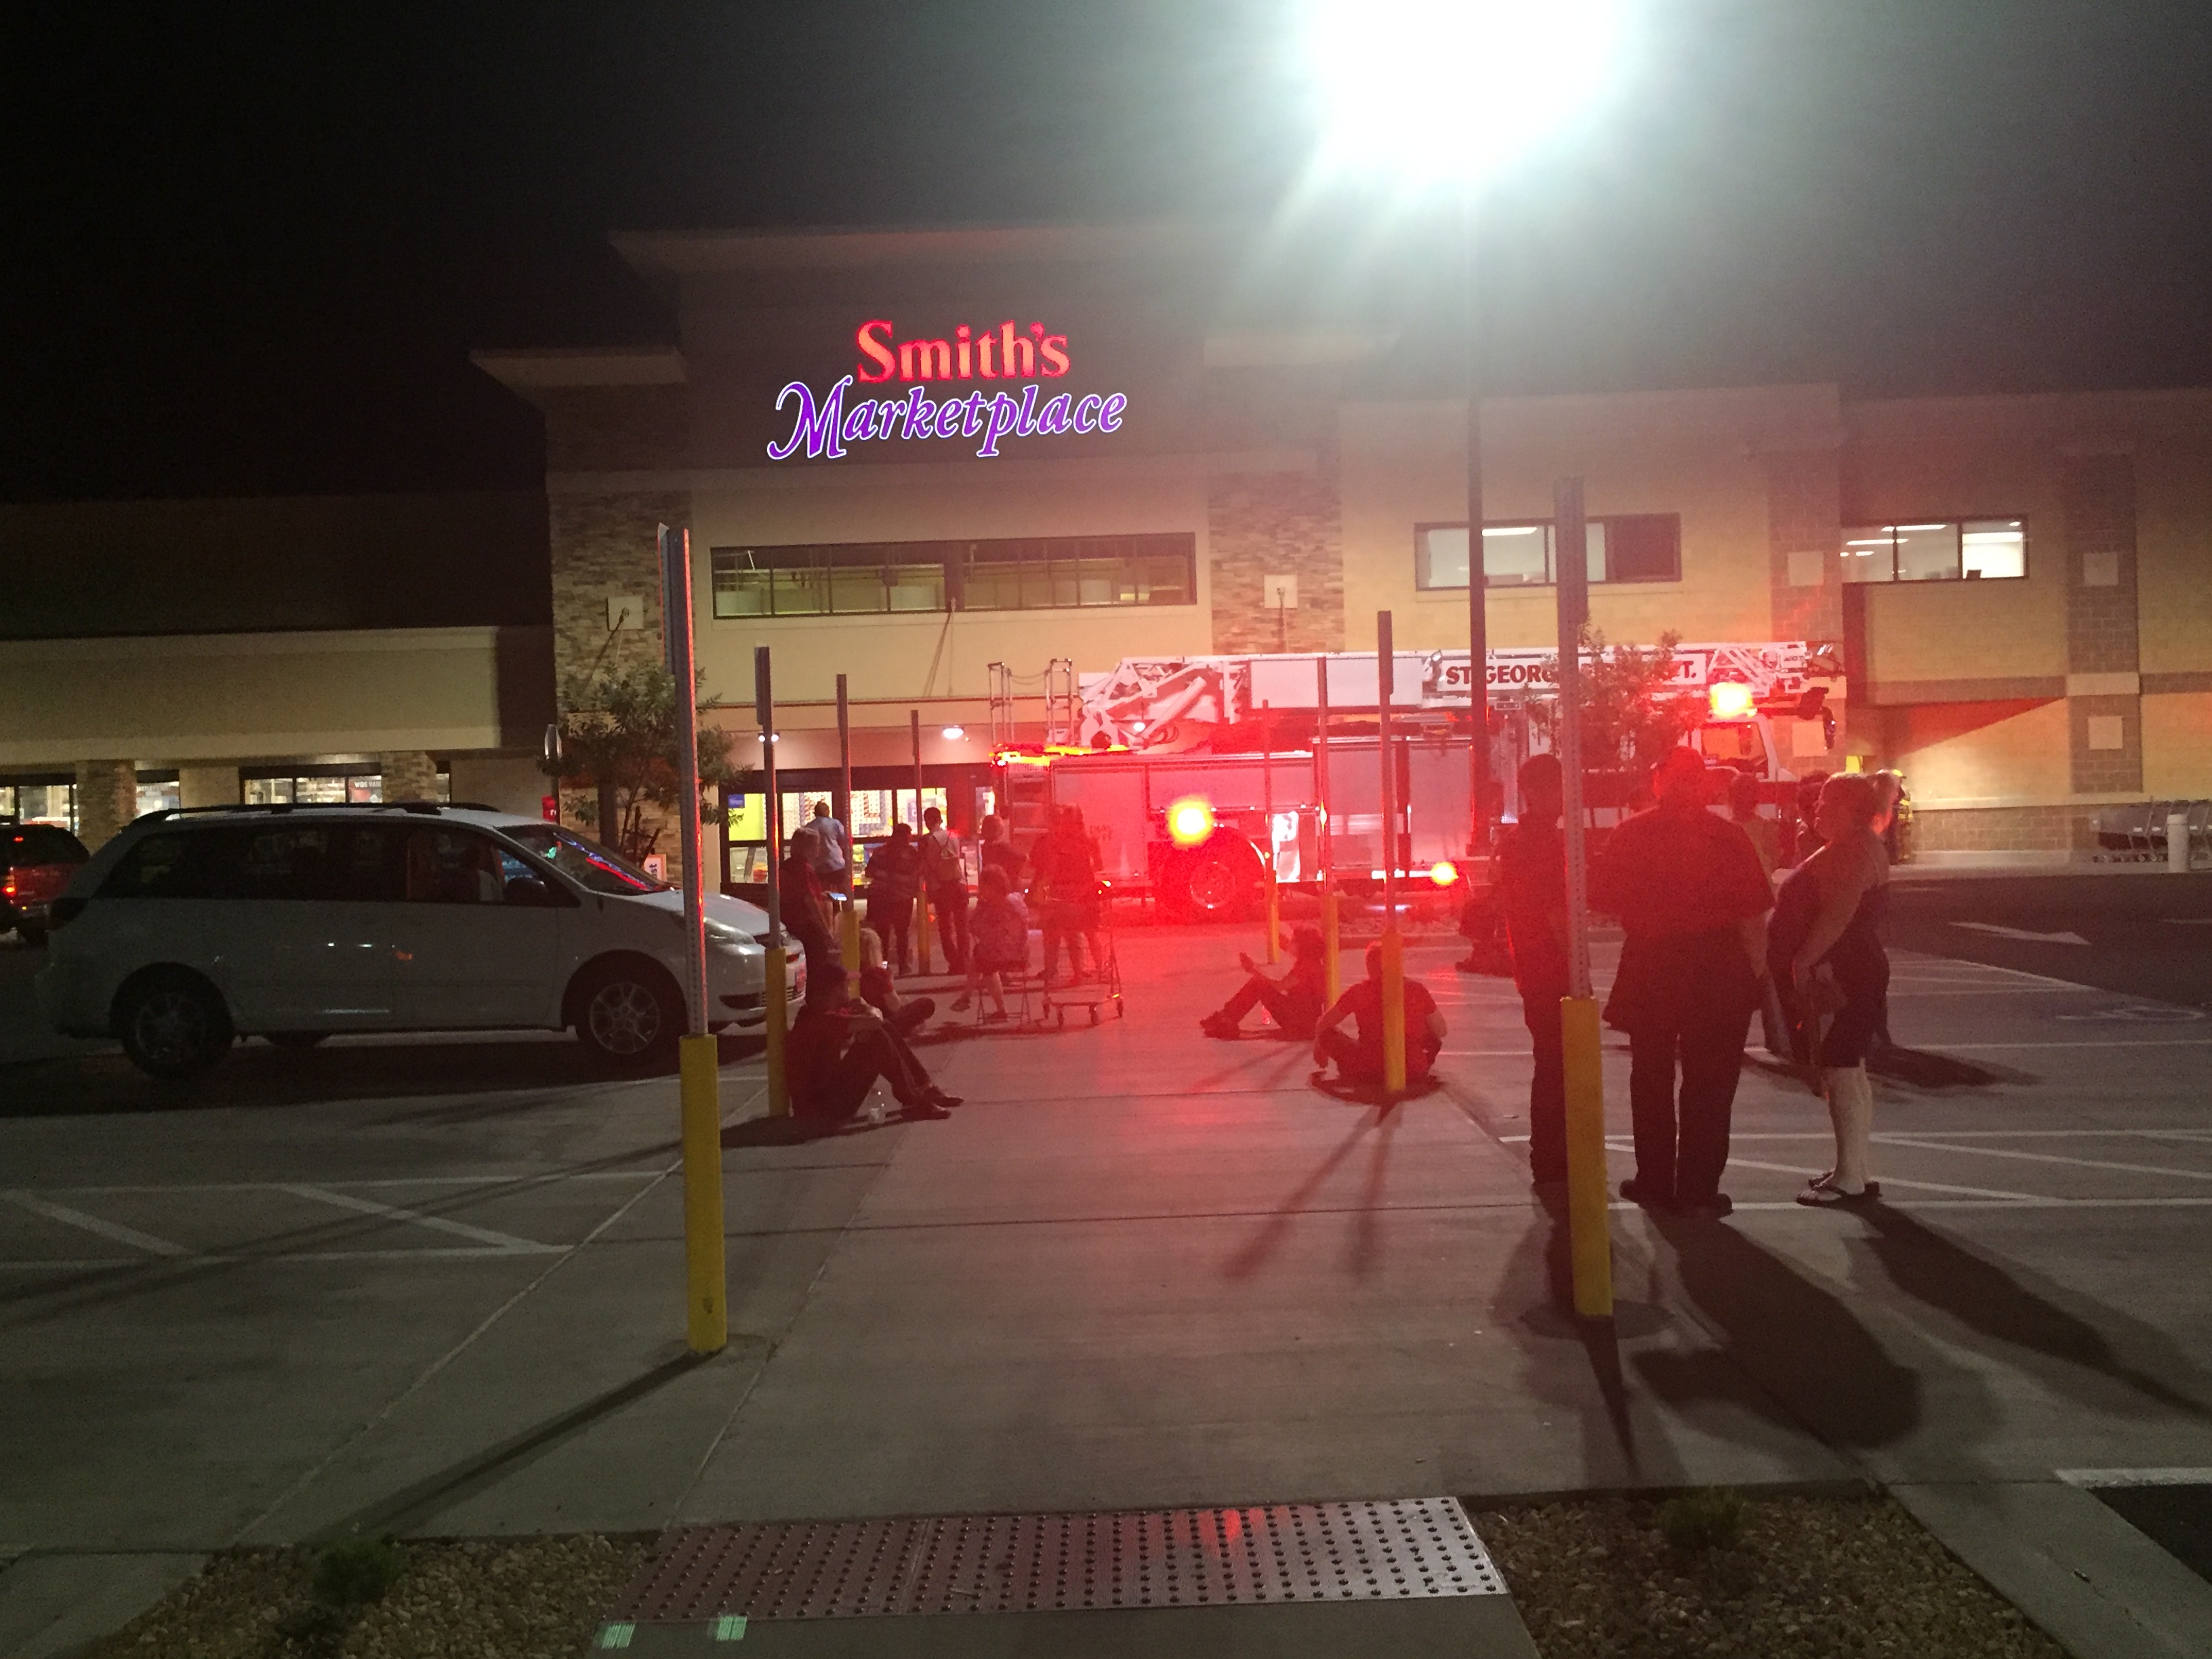 Fire Sprinkler System Activation Triggers Evacuation Of